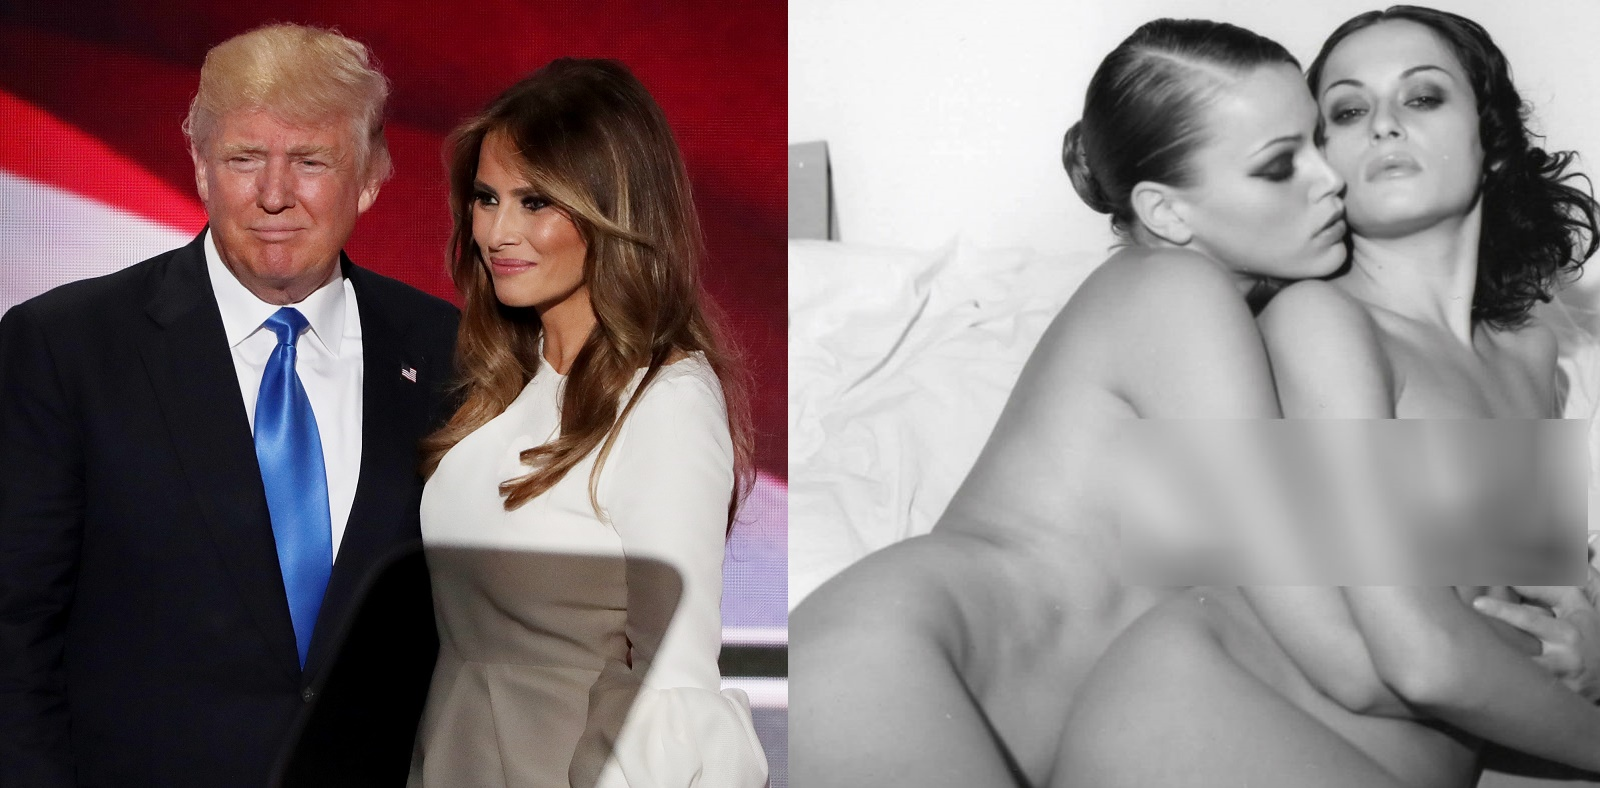 Melania Trumps nude modeling photos are exposed - YouTube